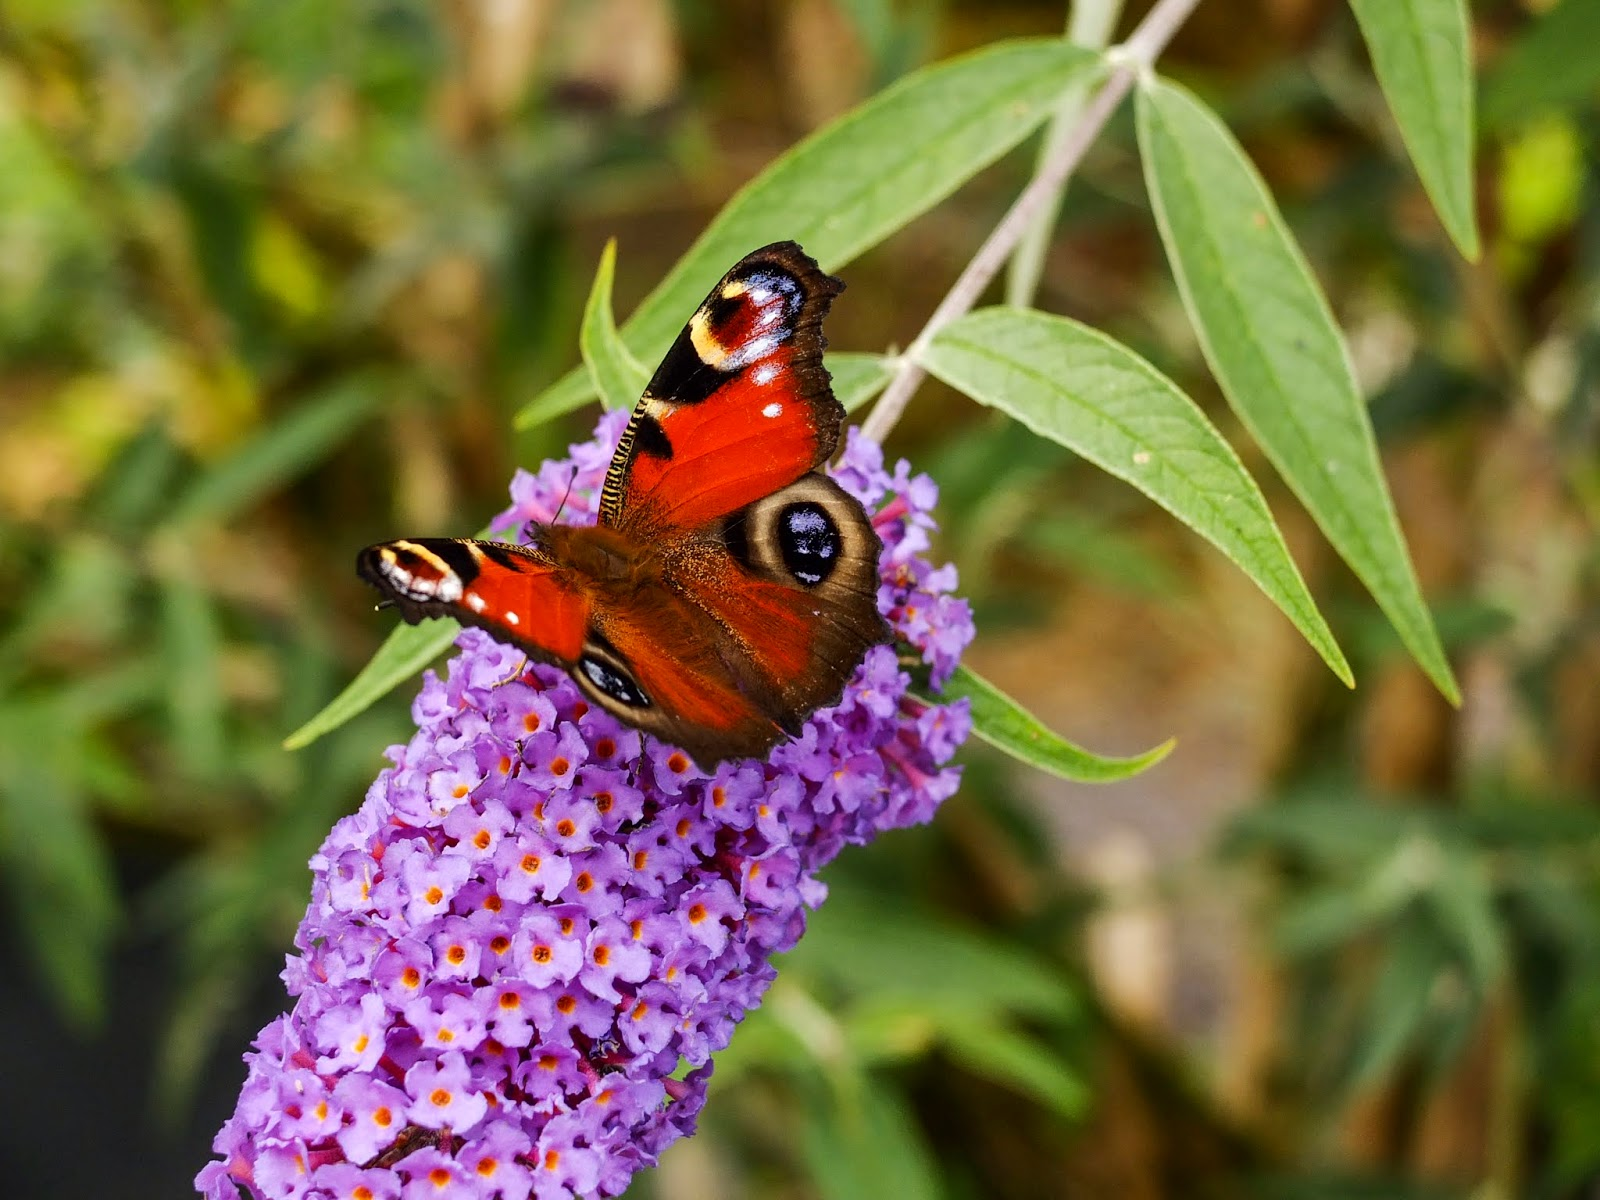 A butterfly sitting on a purple flower.